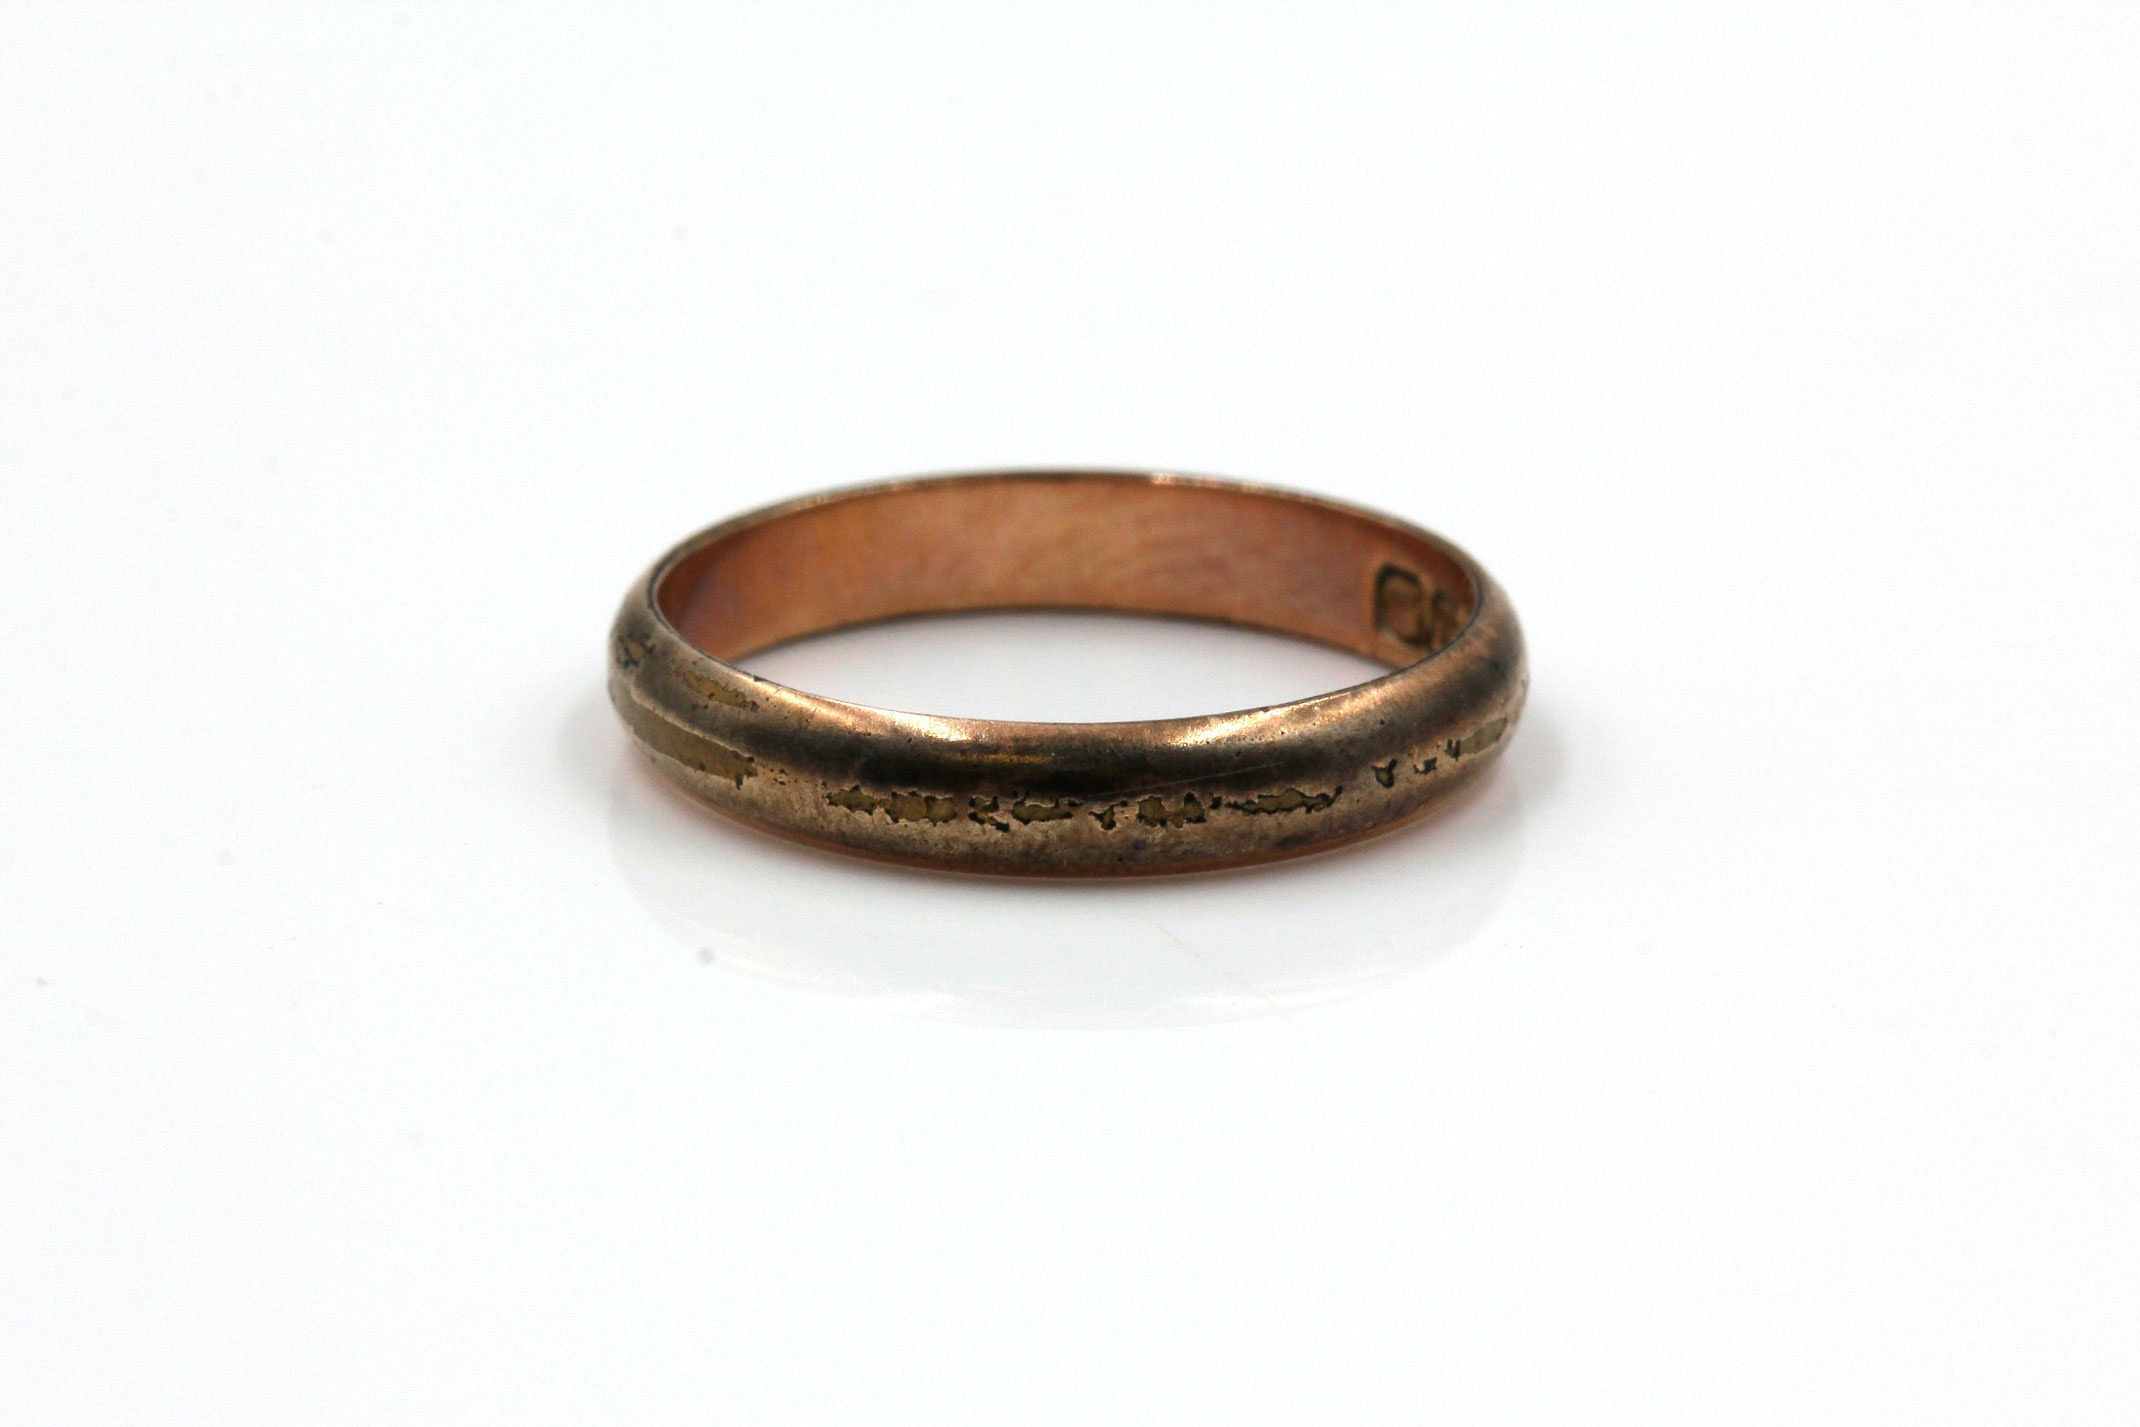 Antique 18K Yellow Gold Plate Band